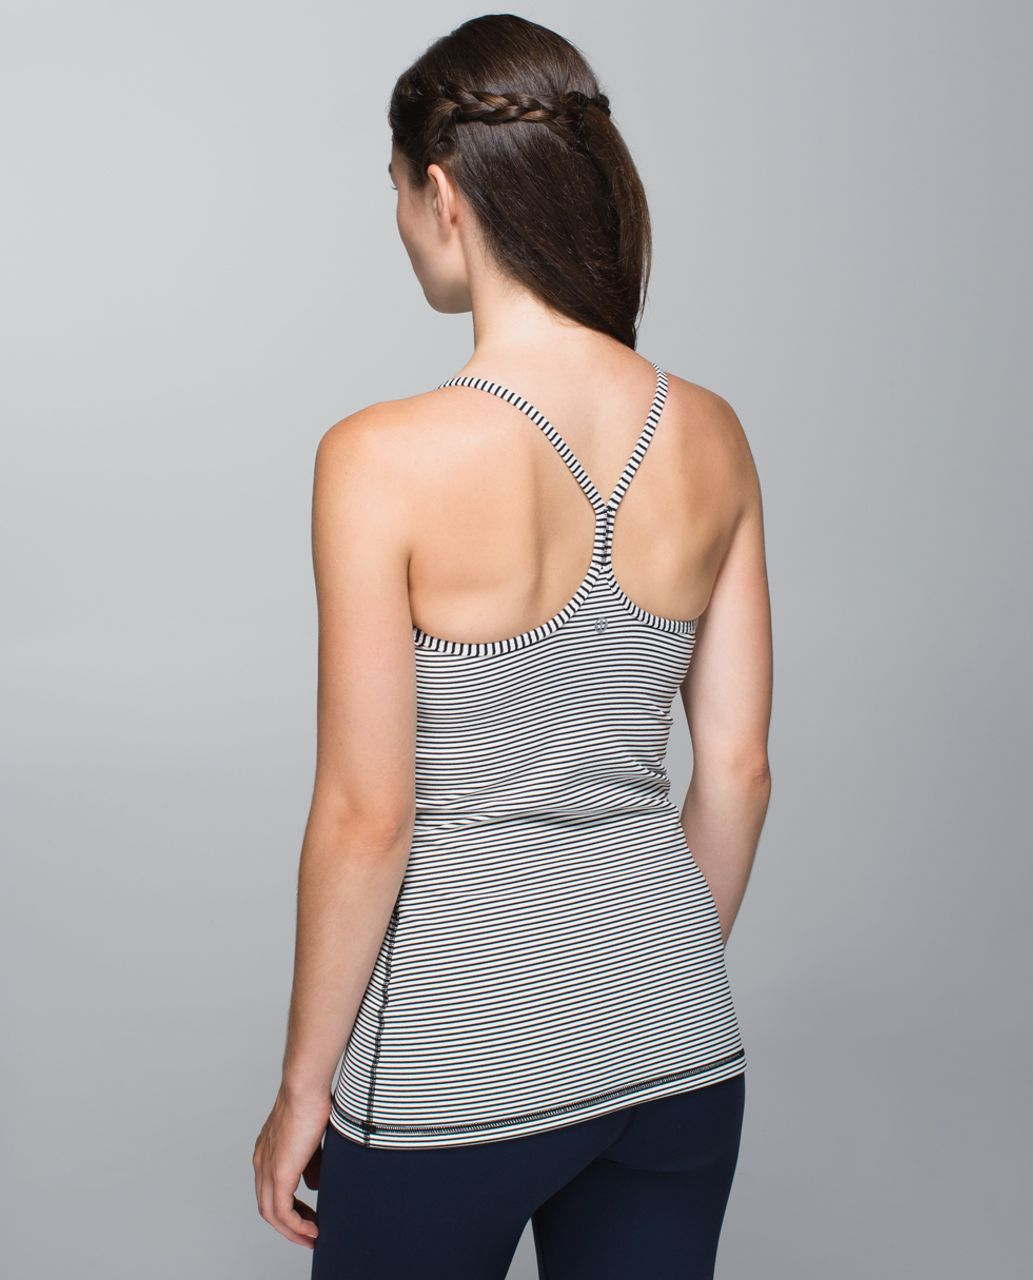 Lululemon Power Y Tank *Luon - Hyper Stripe Black Ghost